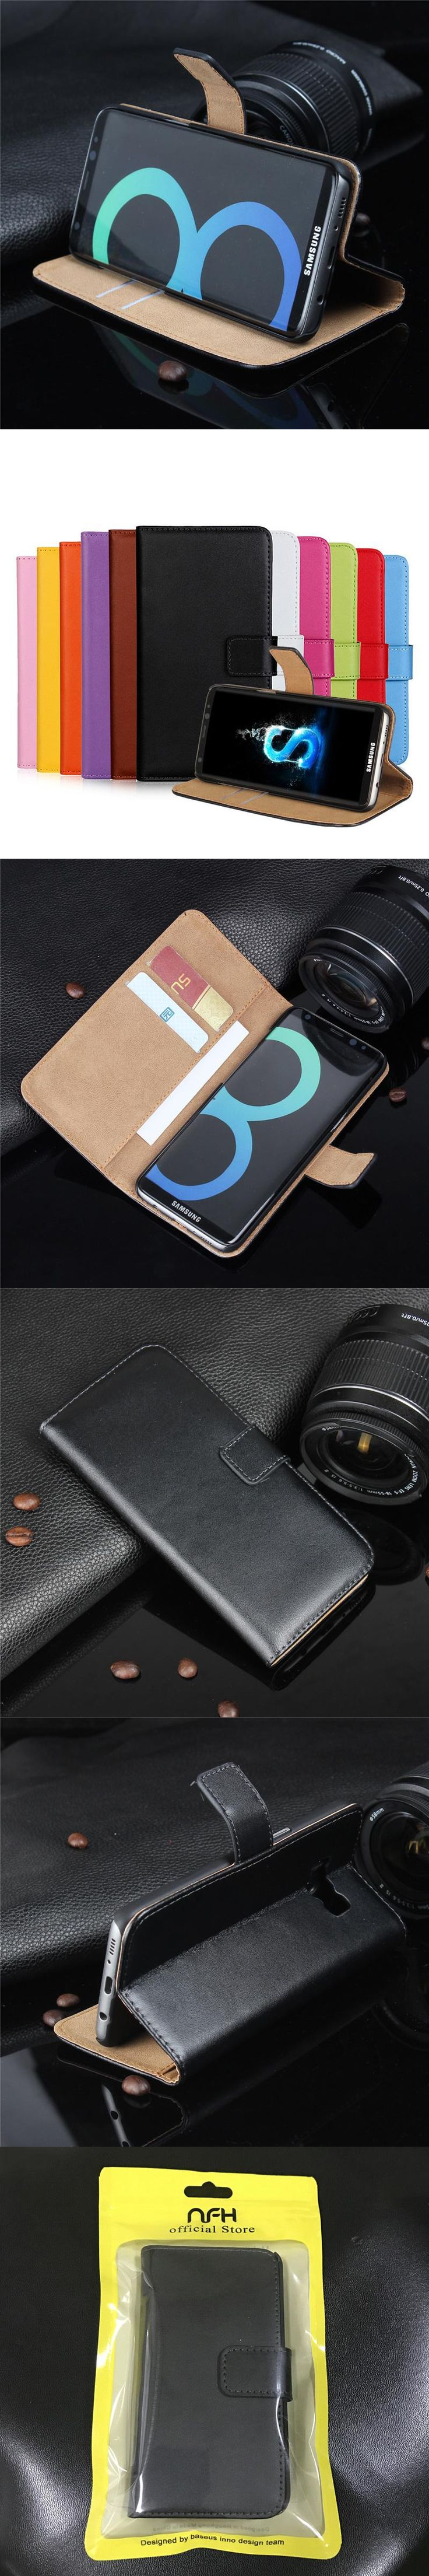 Luxury Wallet Genuine Leather Case for Samsung Galaxy S6 / S7 / S7 Edge / S8 / S8 Plus Flip Cover Stand Design with Card Slot